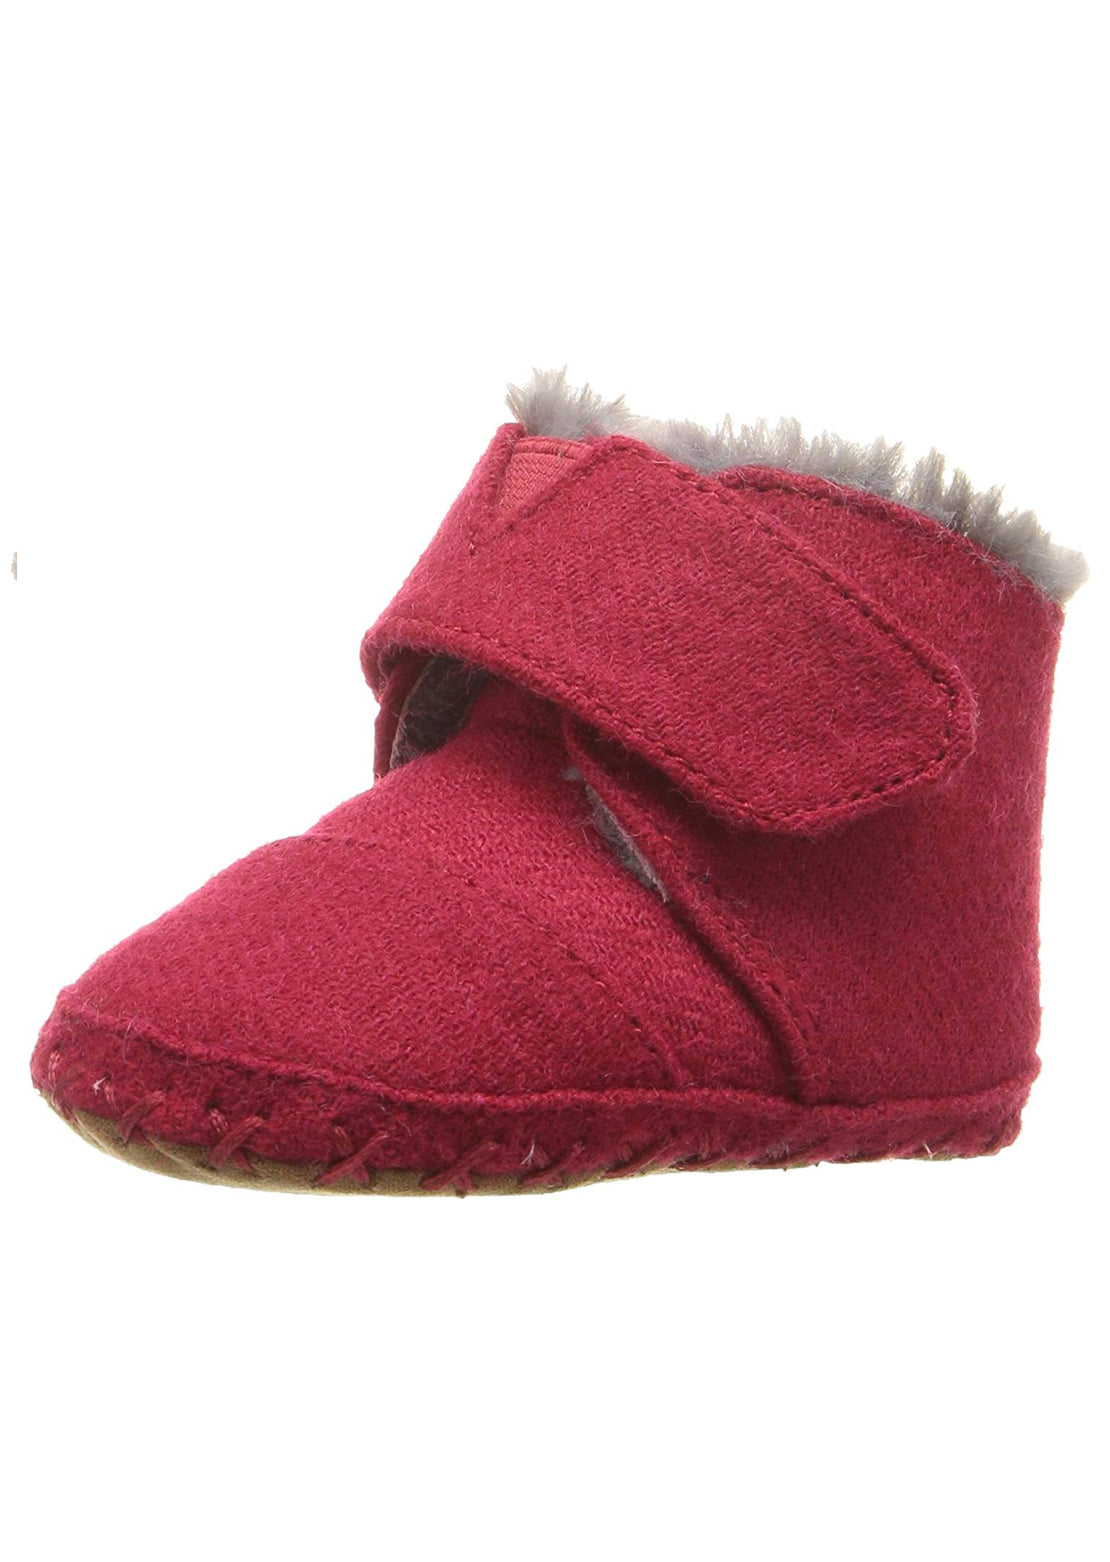 Toms Junior Cuna Boots Red Corduroy